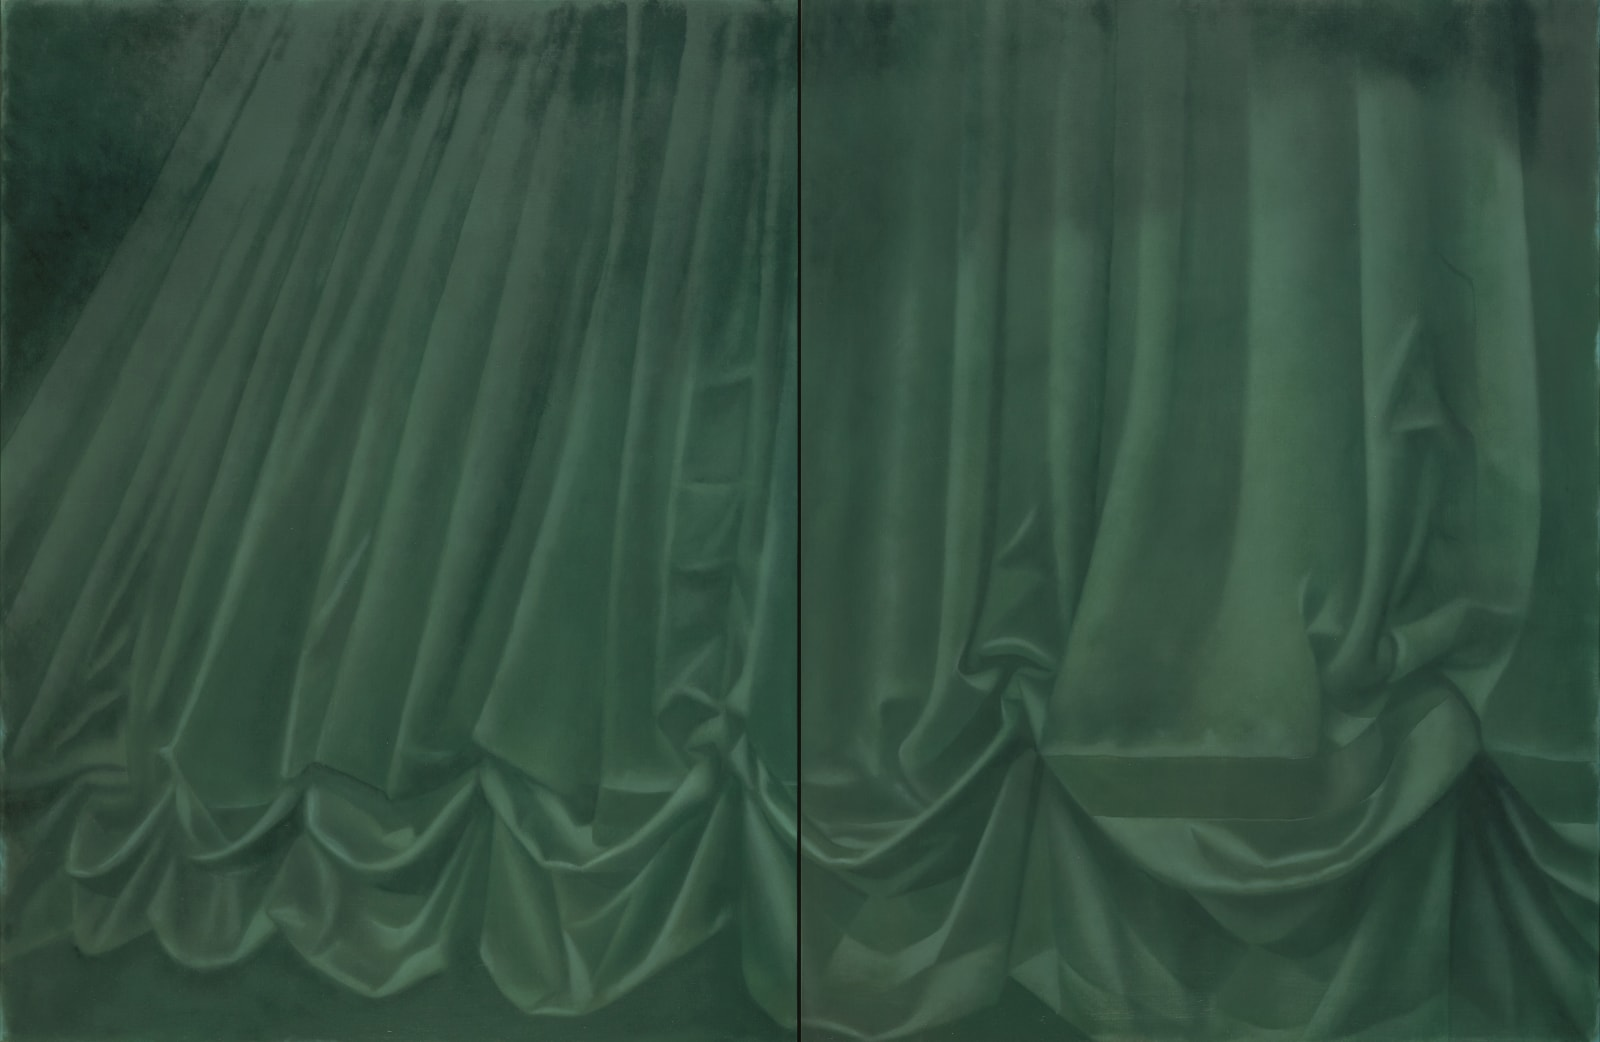 Louise Giovanelli, Dyer, 2020, 170 x 260cm (diptych)